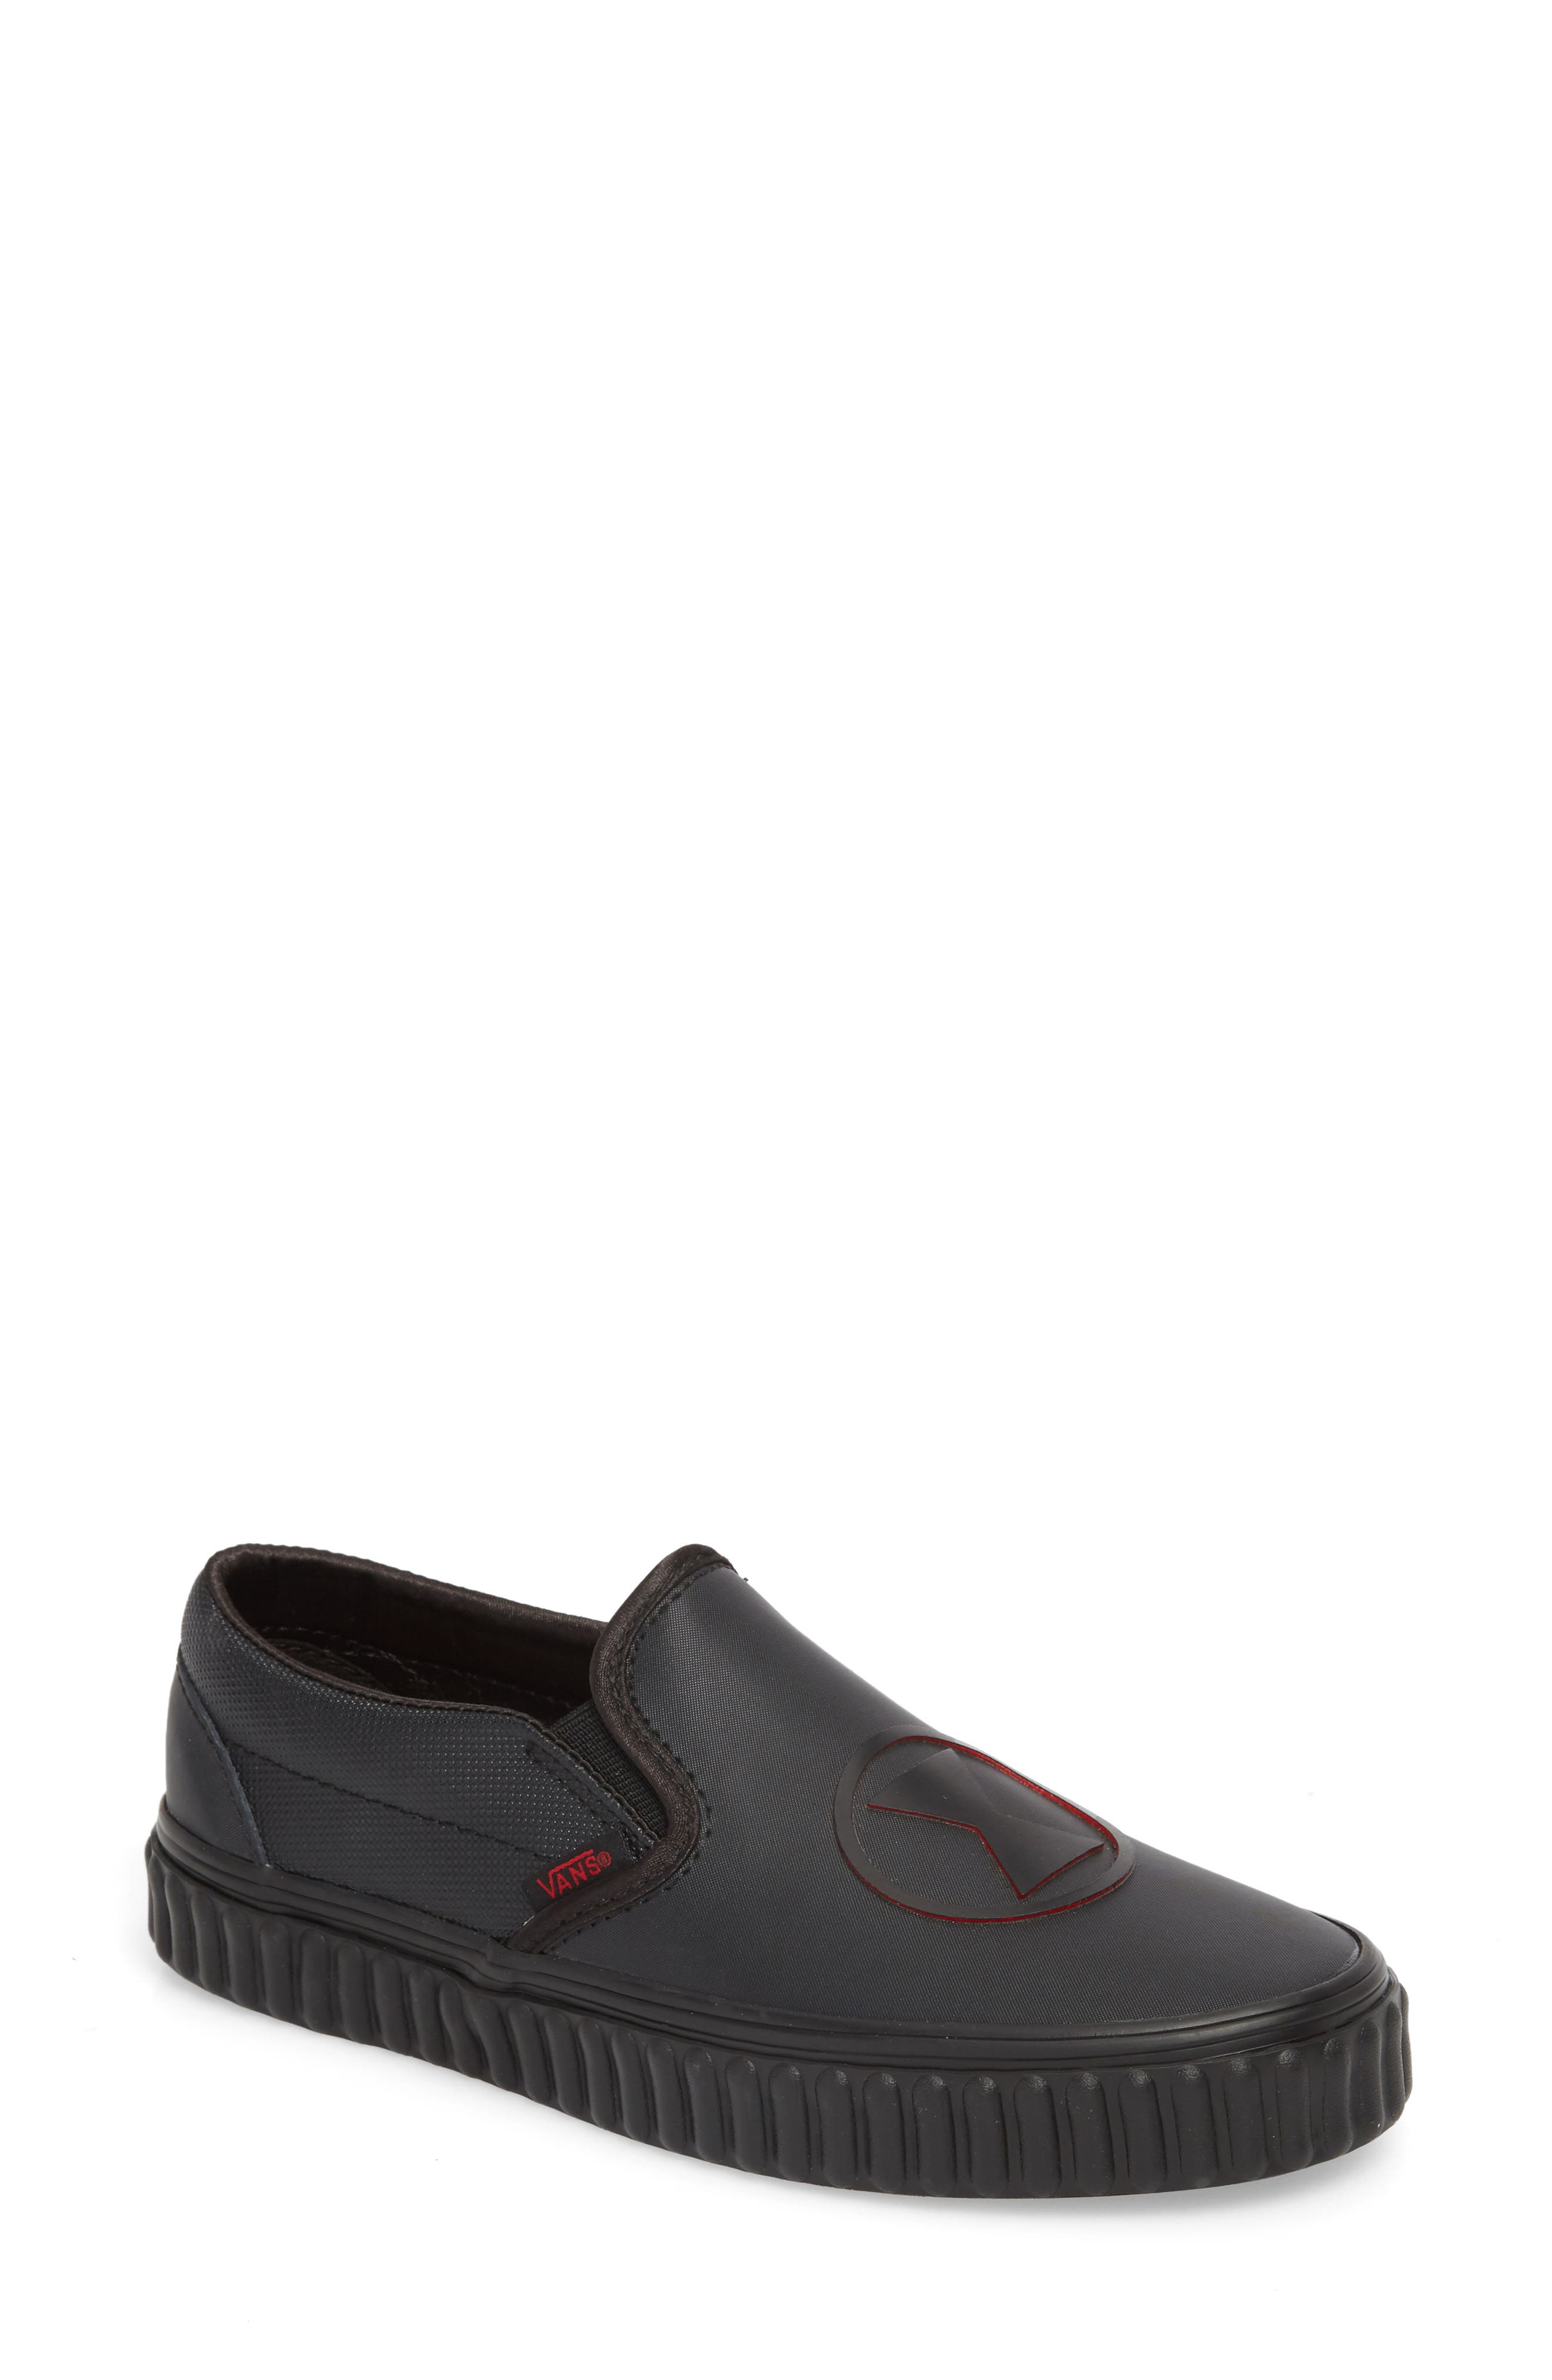 Marvel<sup>®</sup> Black Widow Classic Slip-On,                             Main thumbnail 1, color,                             001